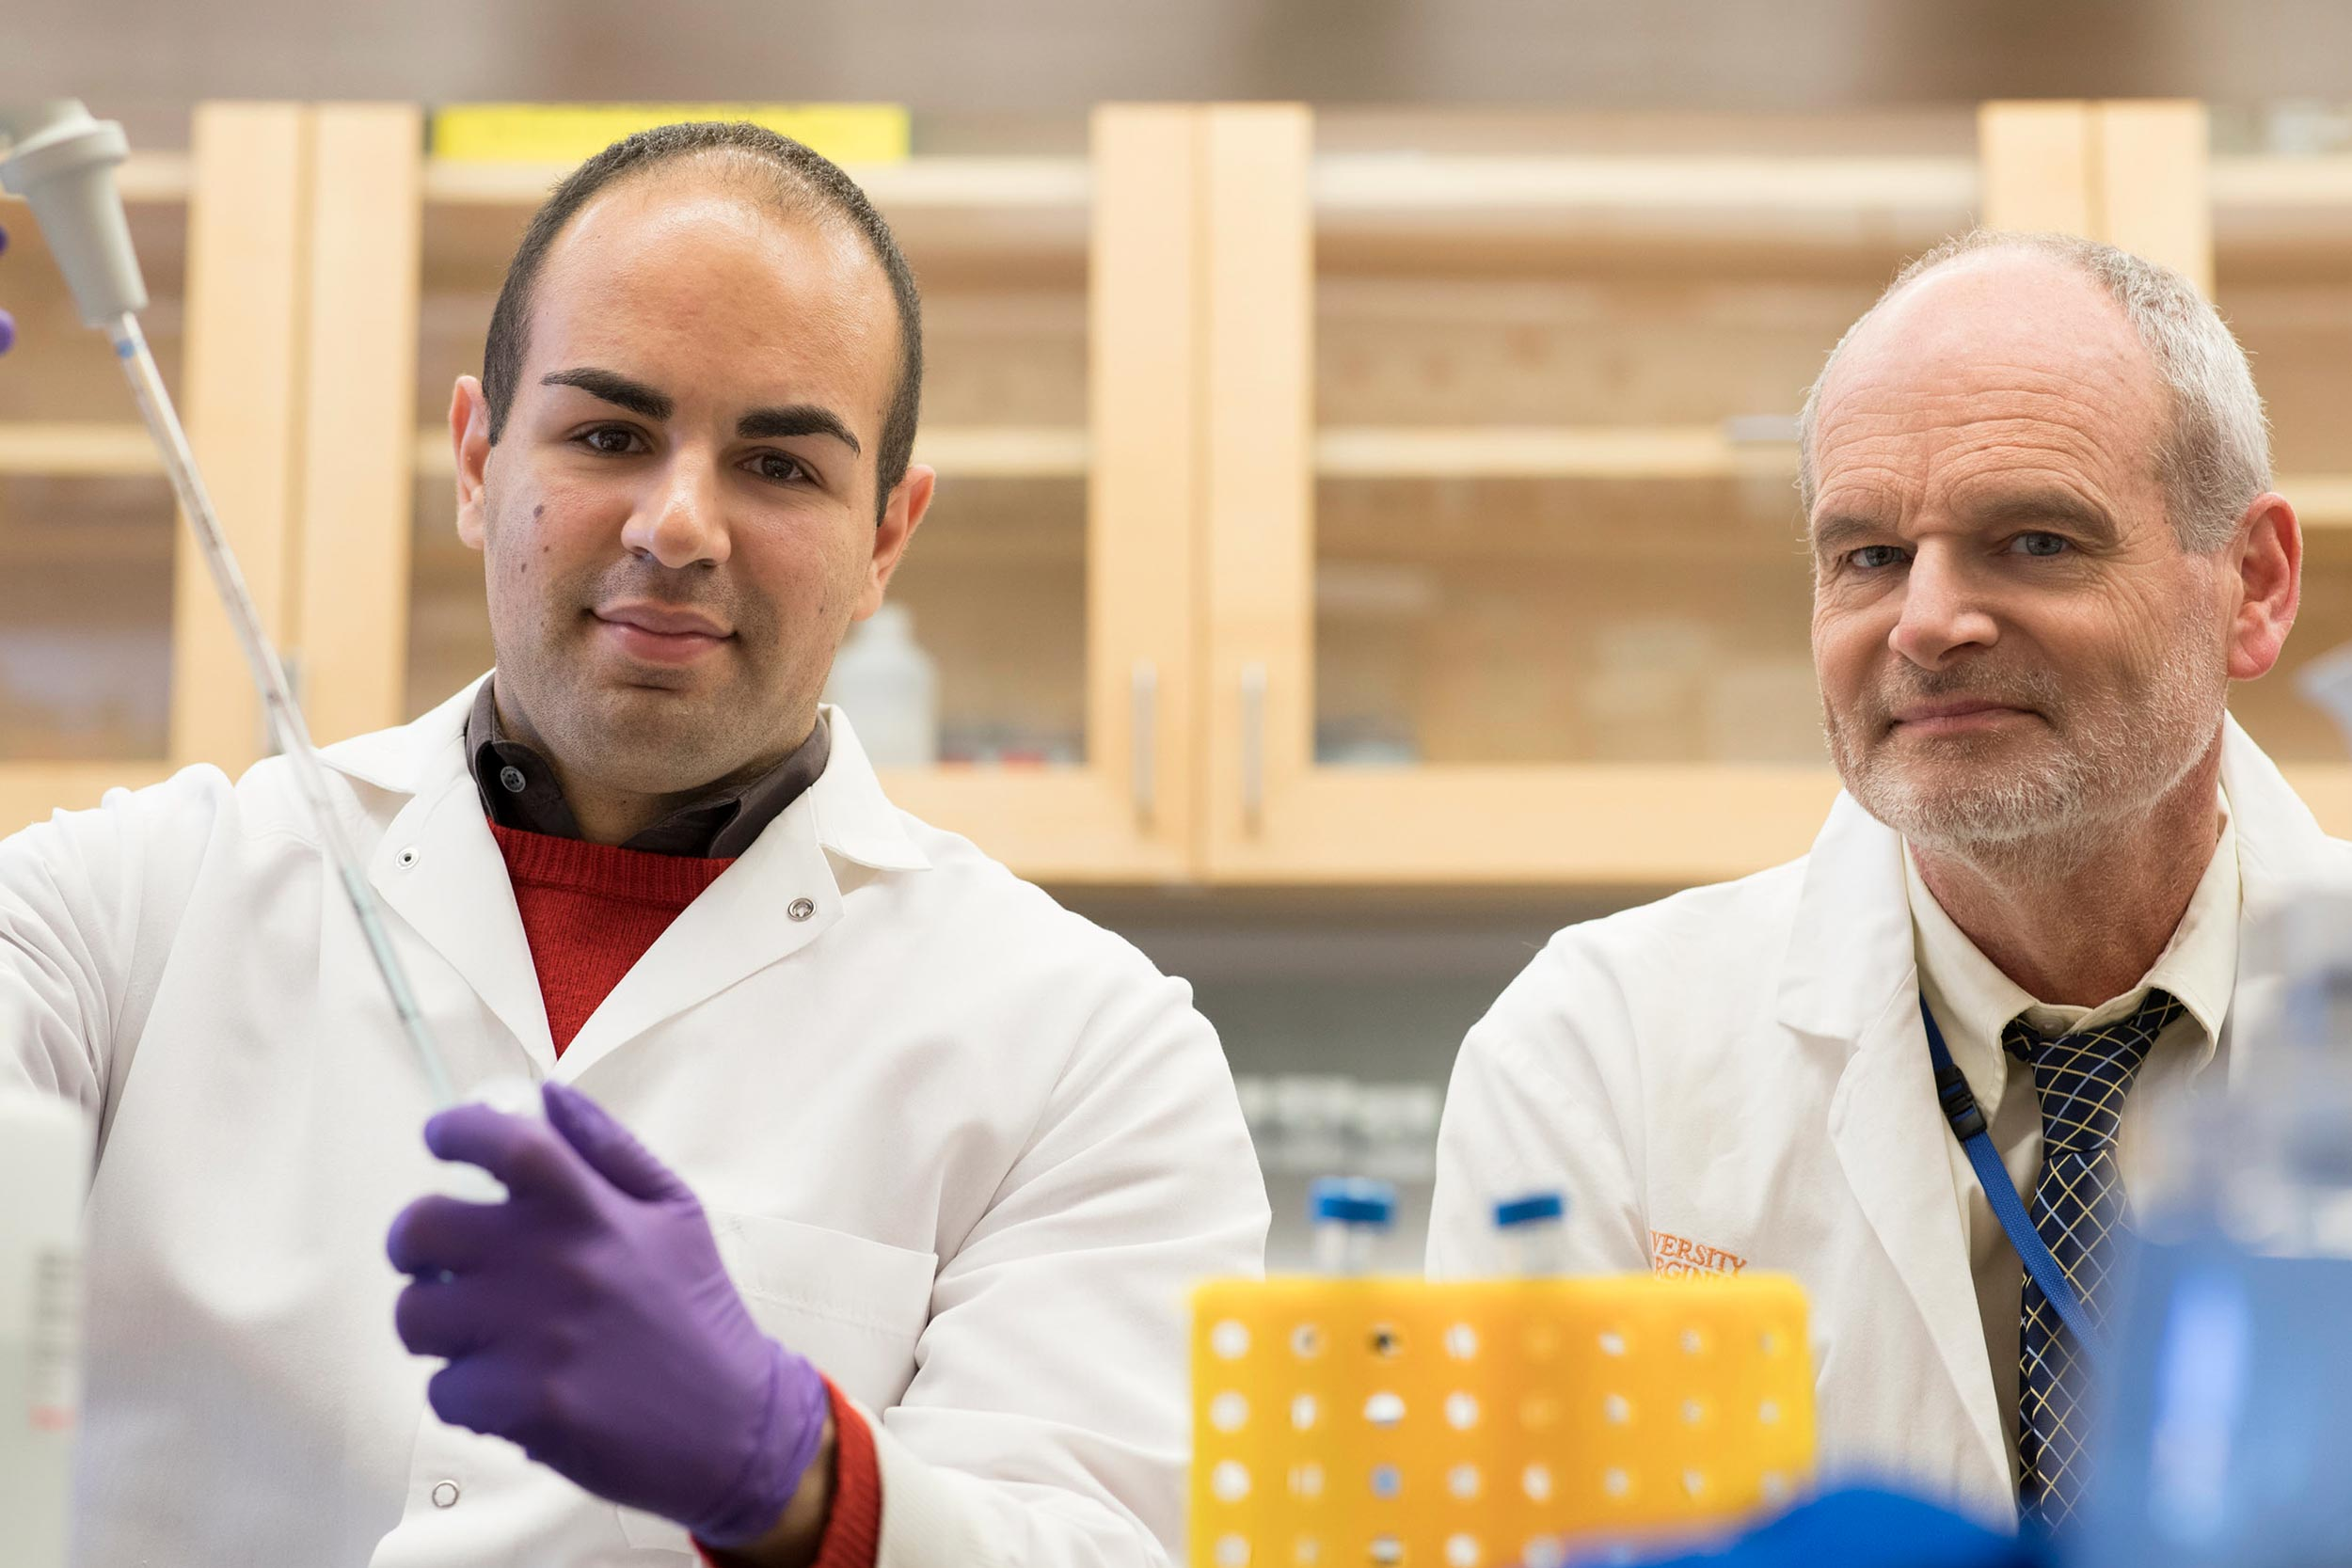 Researchers Mahmoud Saleh and William Petri were initially discouraged from looking into C. diffi infections, but their work has broken ground in identifying patients who might be susceptible to infection.